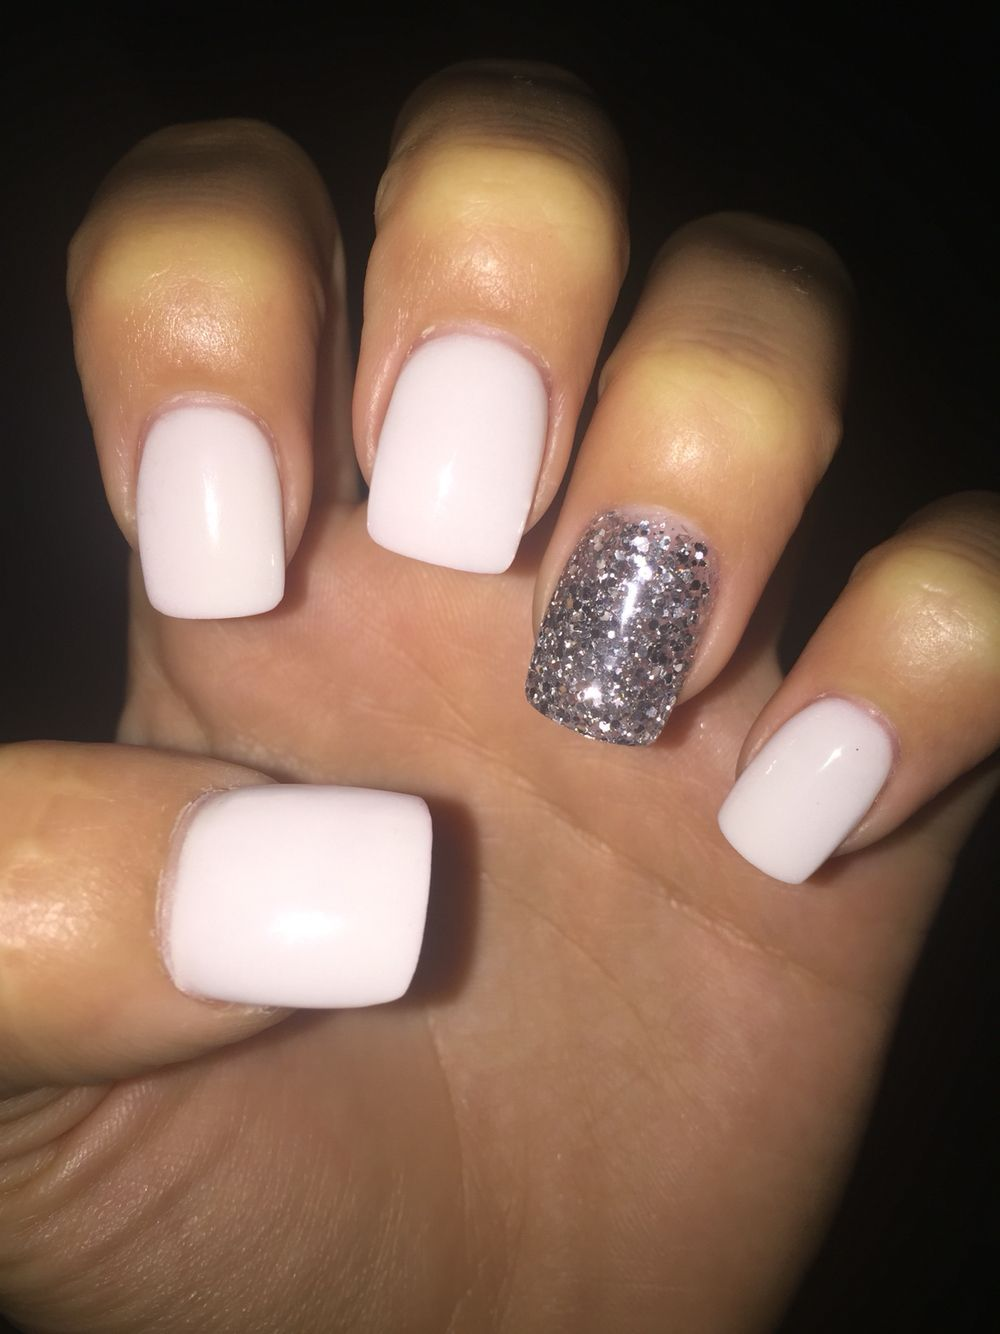 White Acrylic With Silver Sparkly Acrylic Sparkly Acrylic Nails White Acrylic Nails Short Square Acrylic Nails